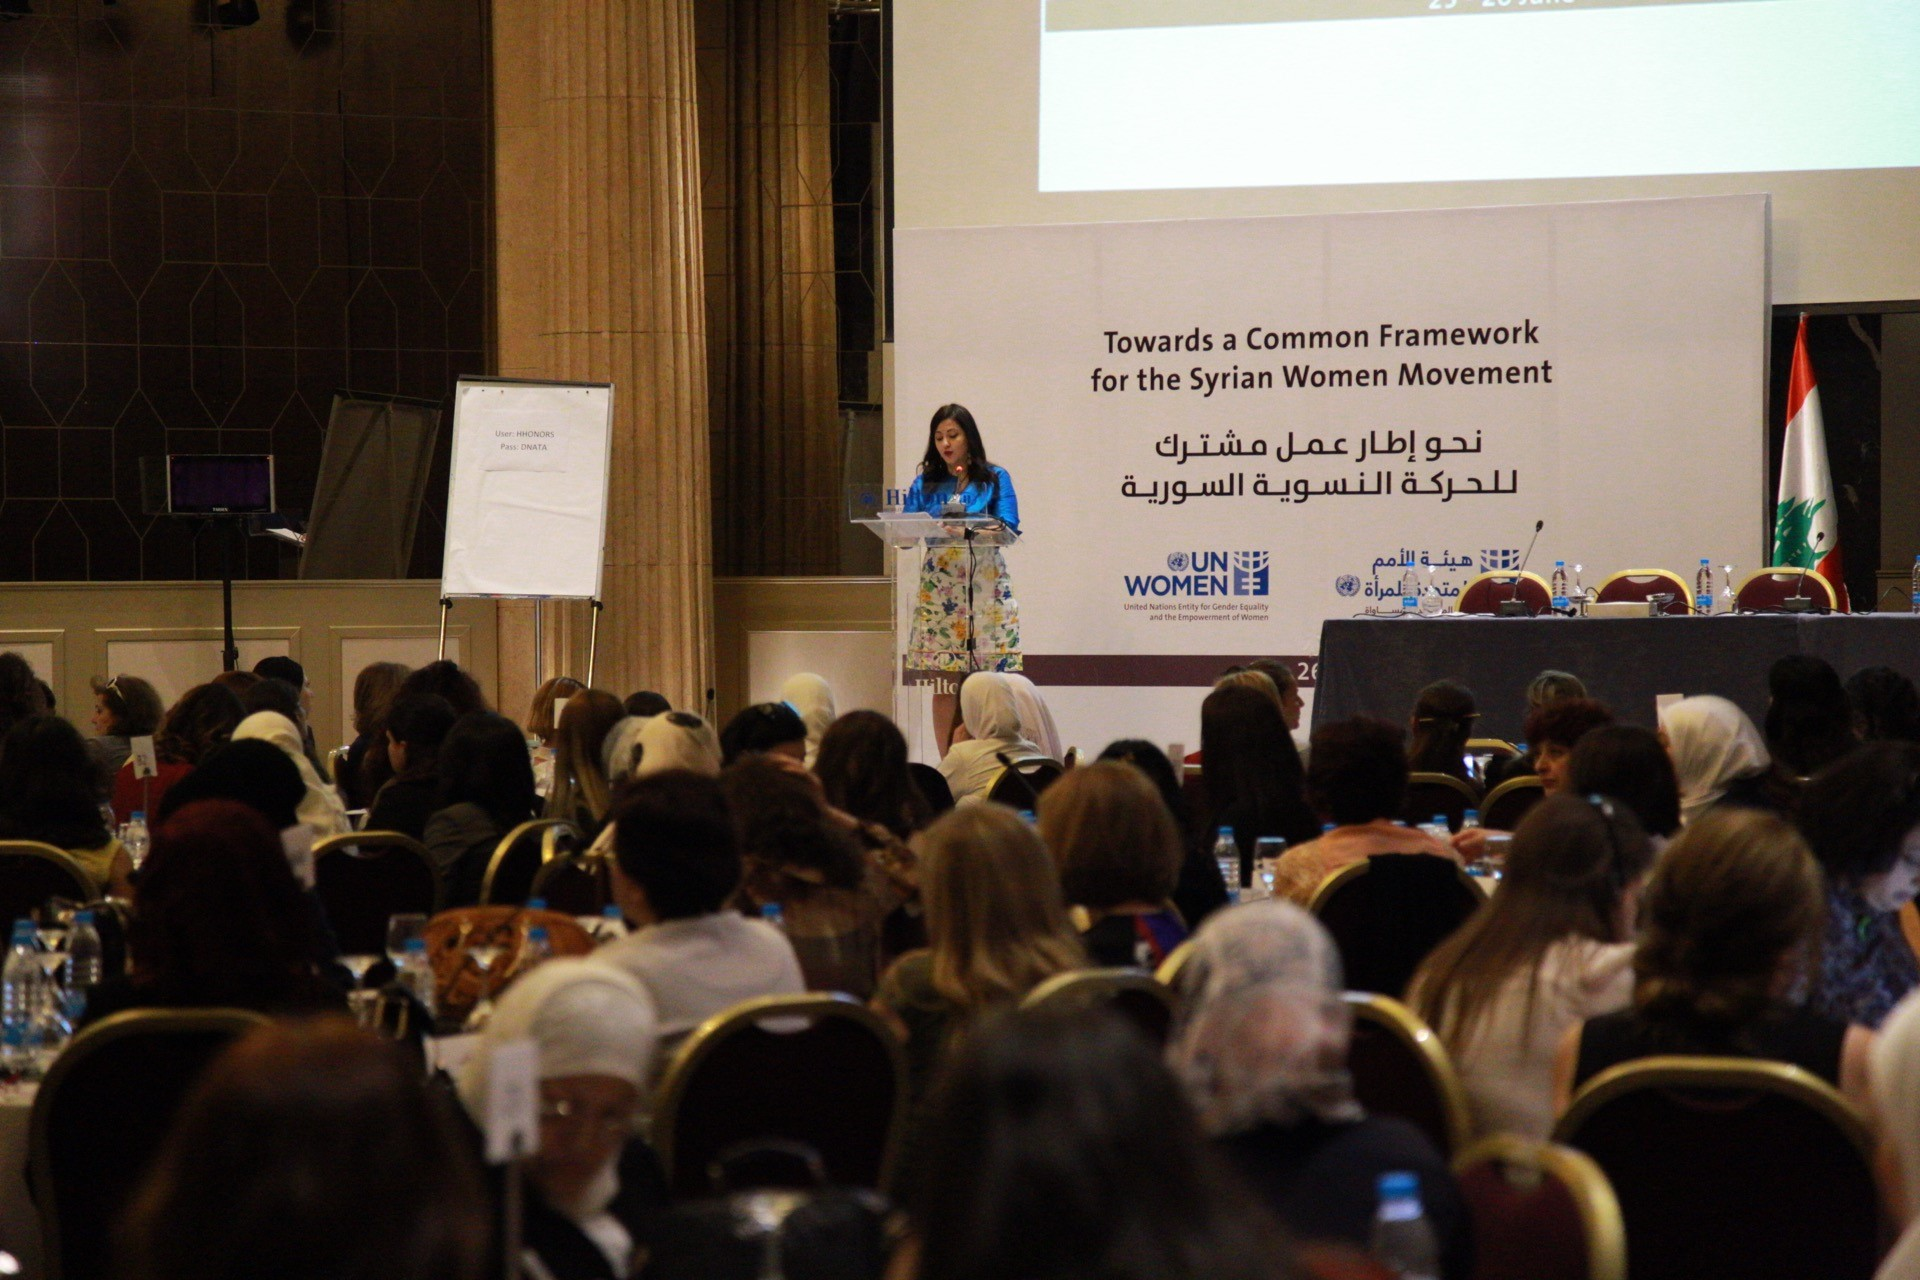 Syrian women come together to create a common framework for their movement